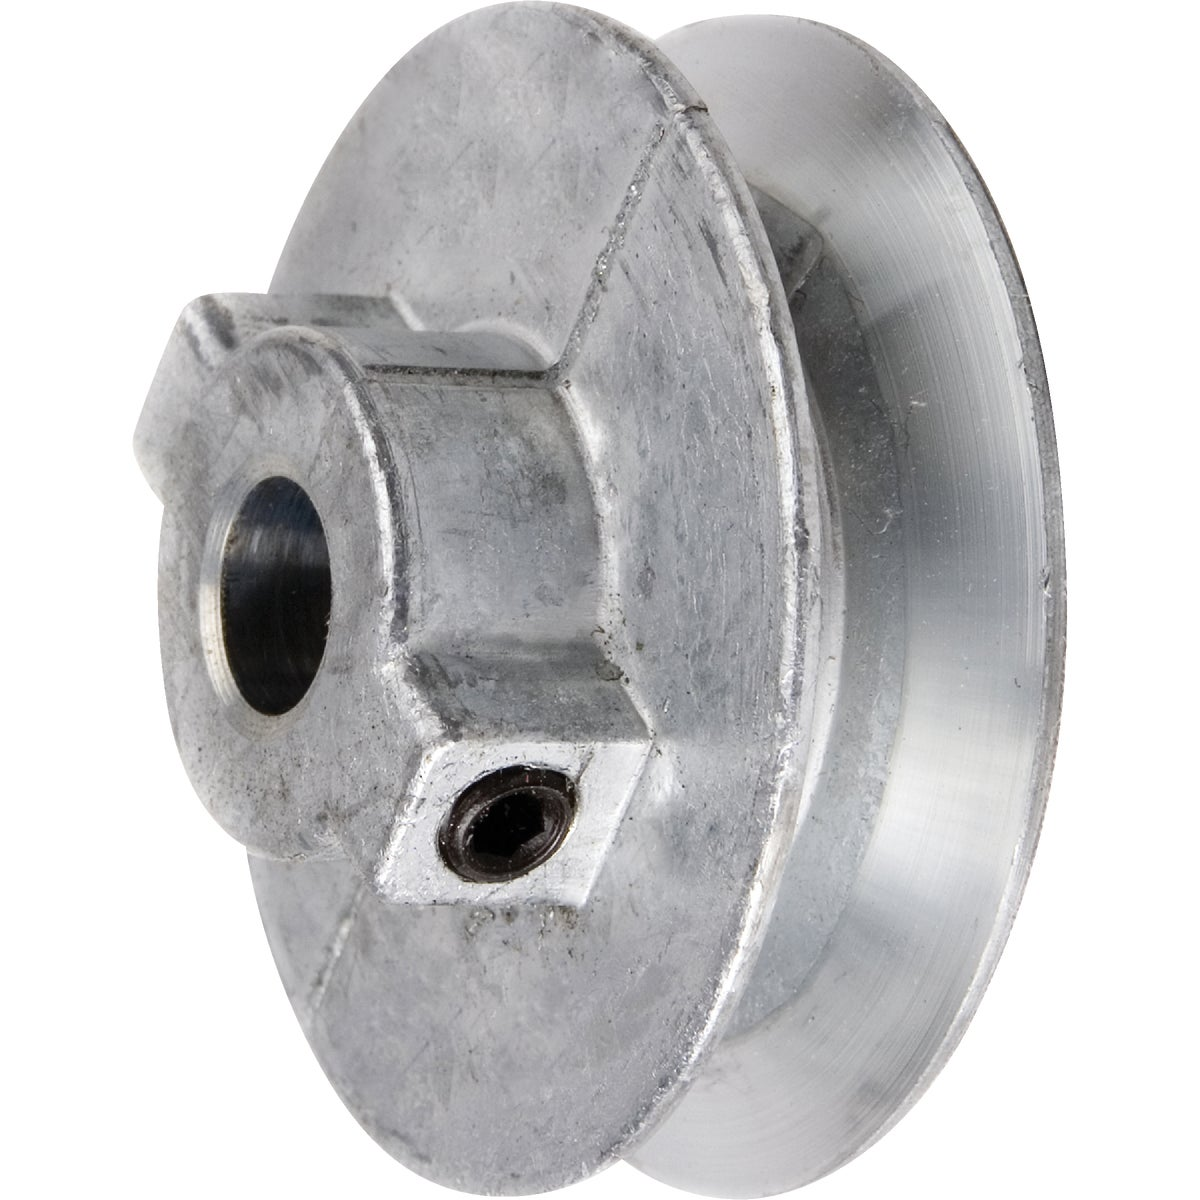 6X1/2 PULLEY